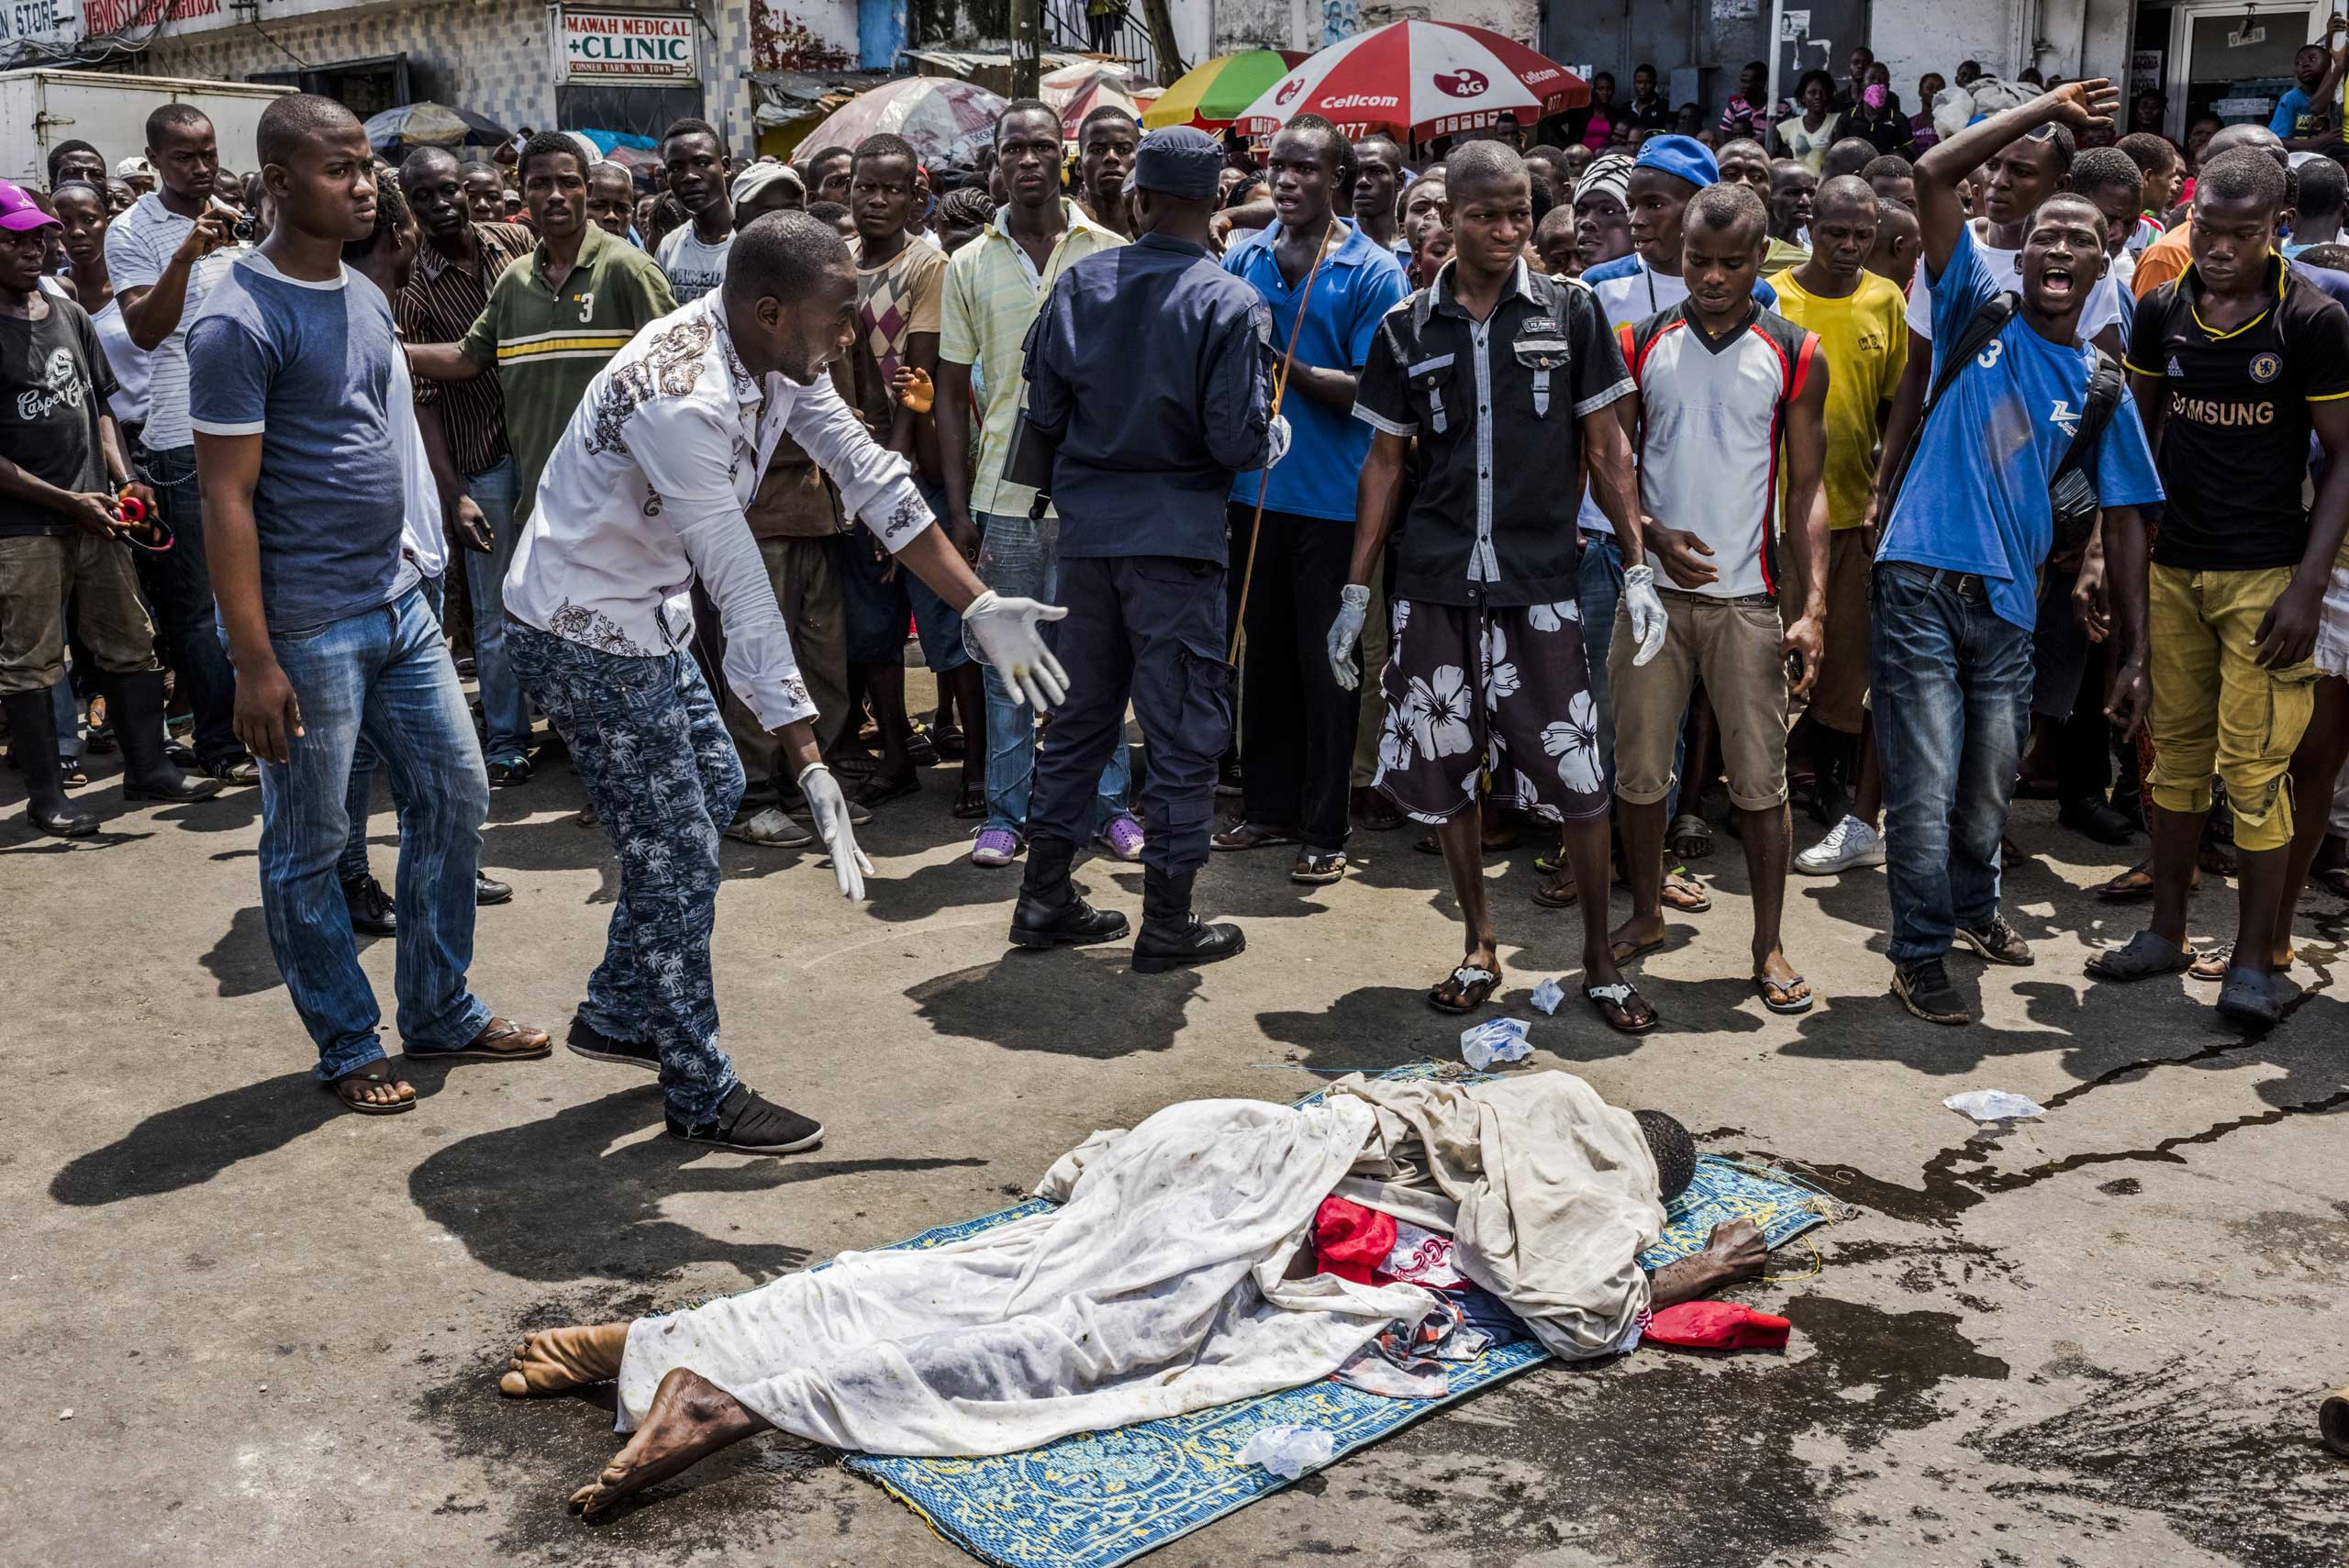 Residents look on as the body of a man suspected of dying from Ebola lies in a busy street after it was reportedly dragged there to draw the attention of burial teams. For several days, his family had asked for the body to be picked up, to no avail. Monrovia, Liberia, Sept. 15, 2014.